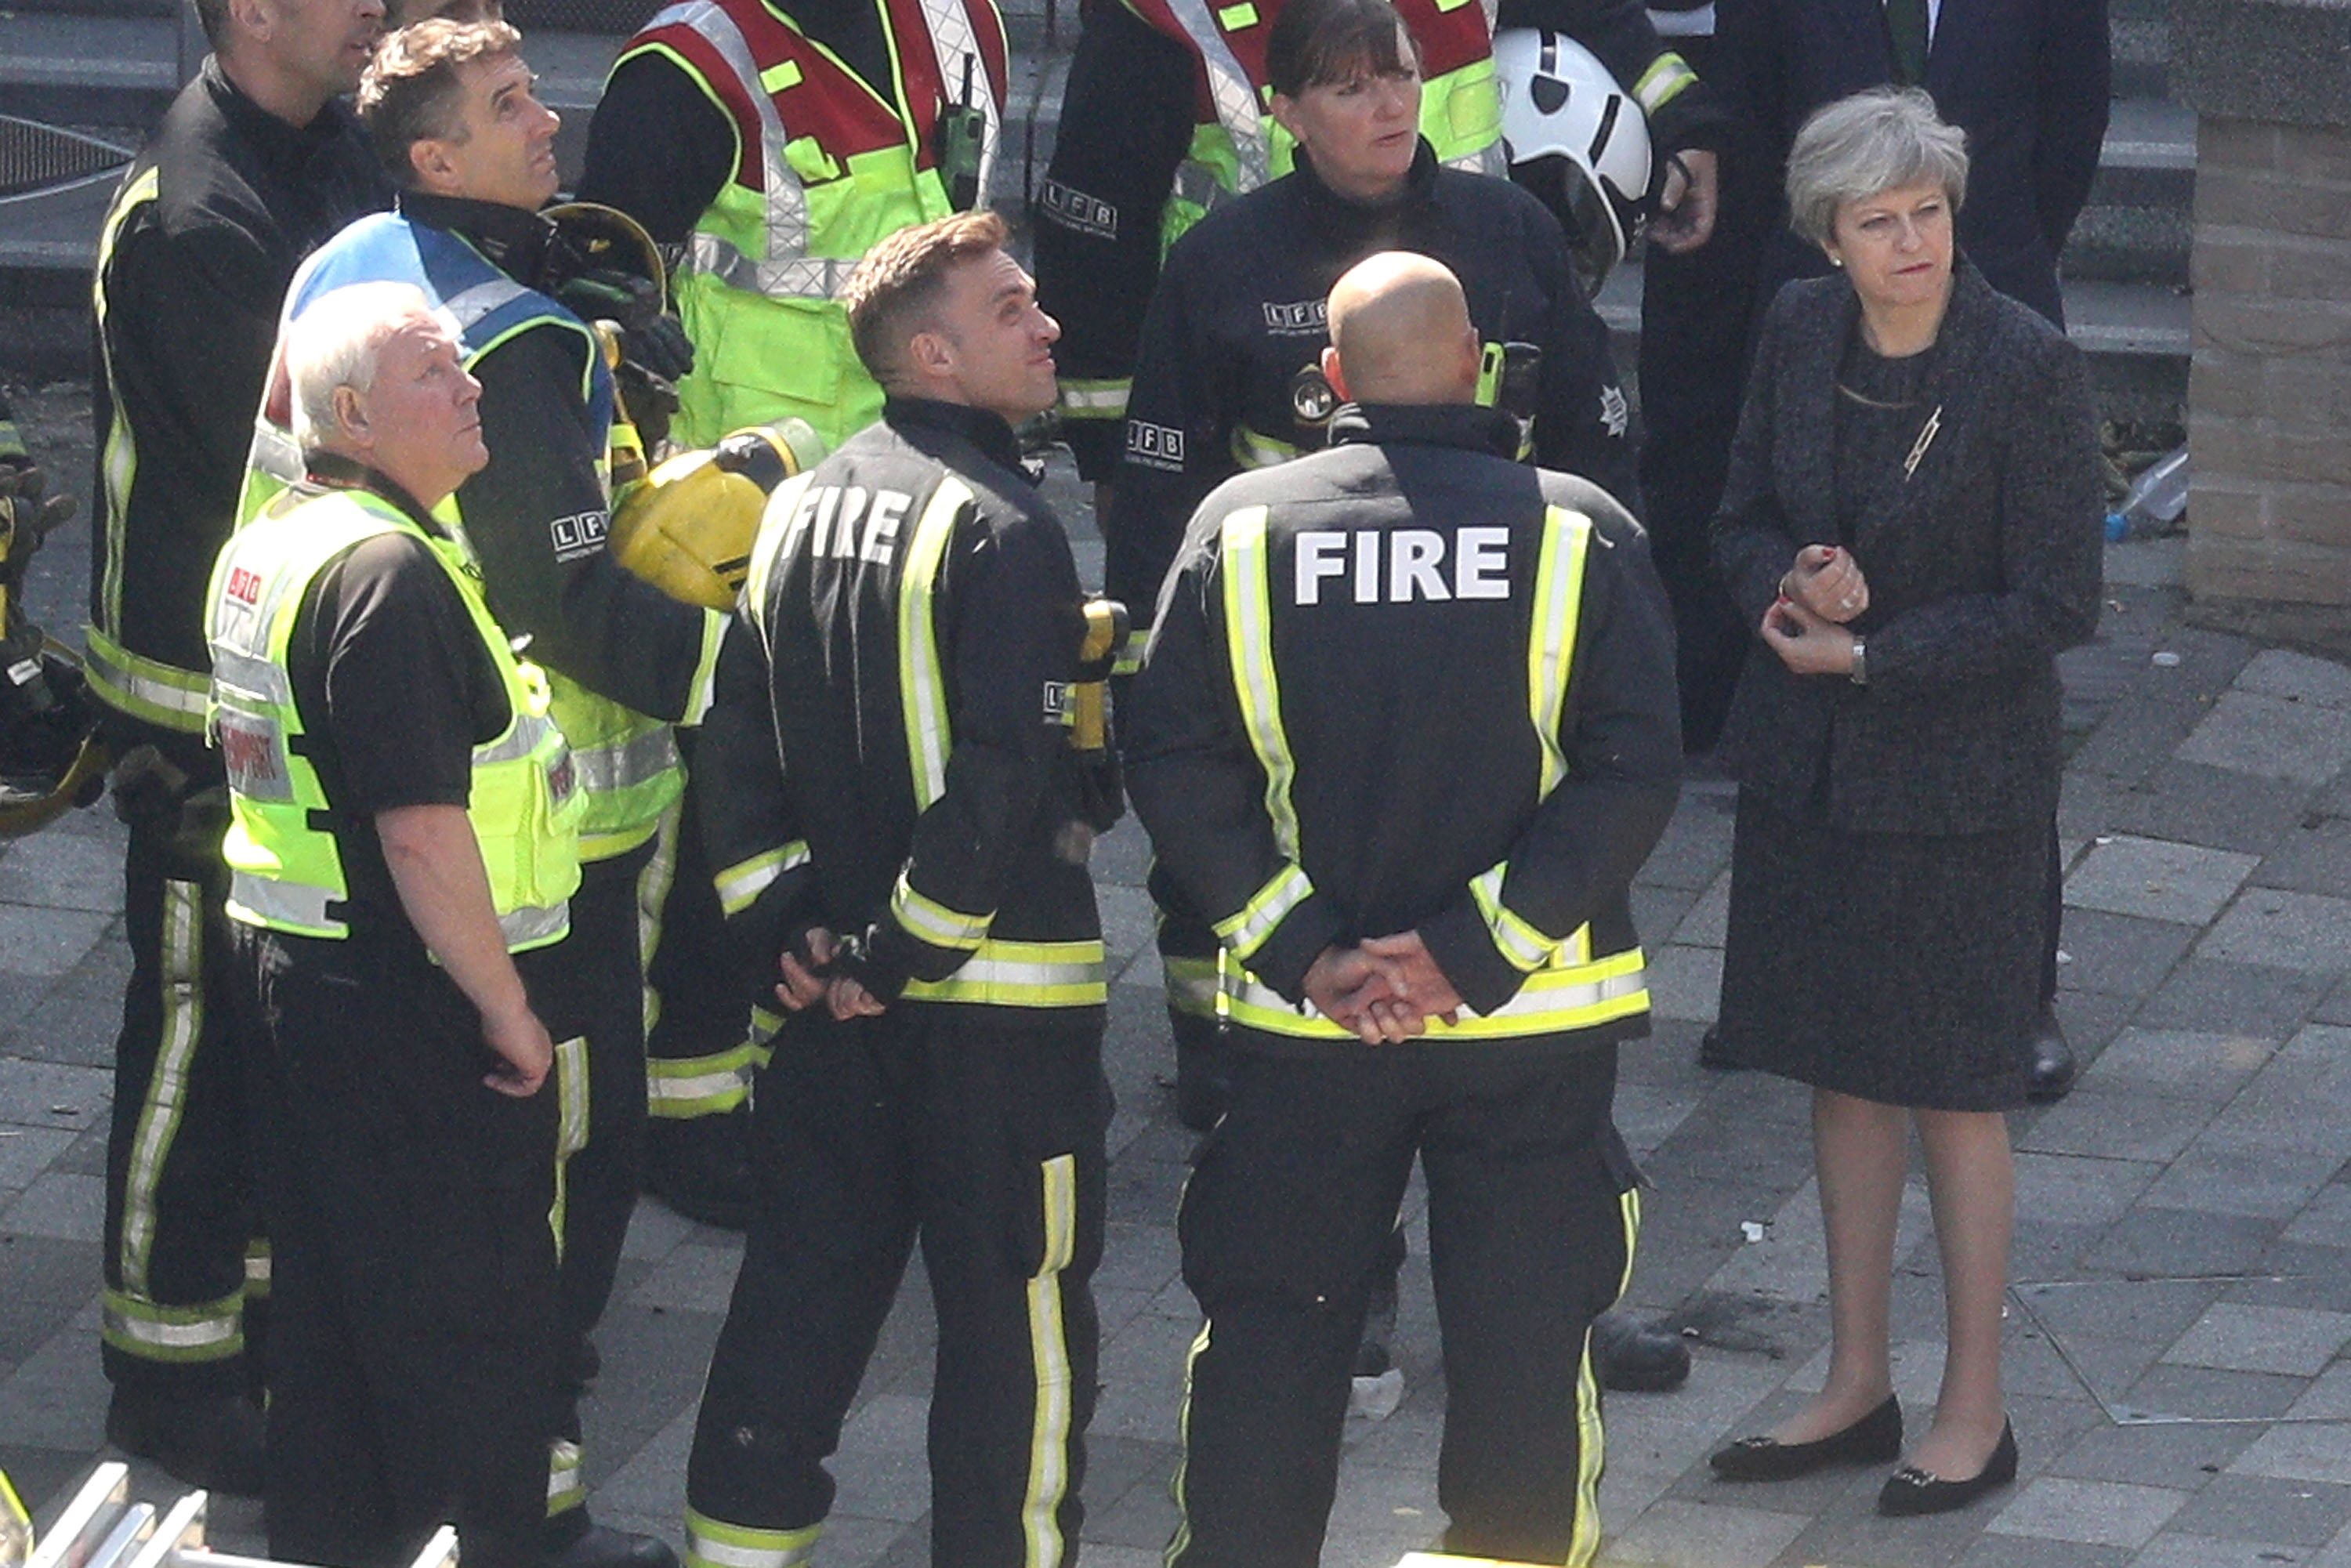 British PM May tries to quell public anger after deadly London fire